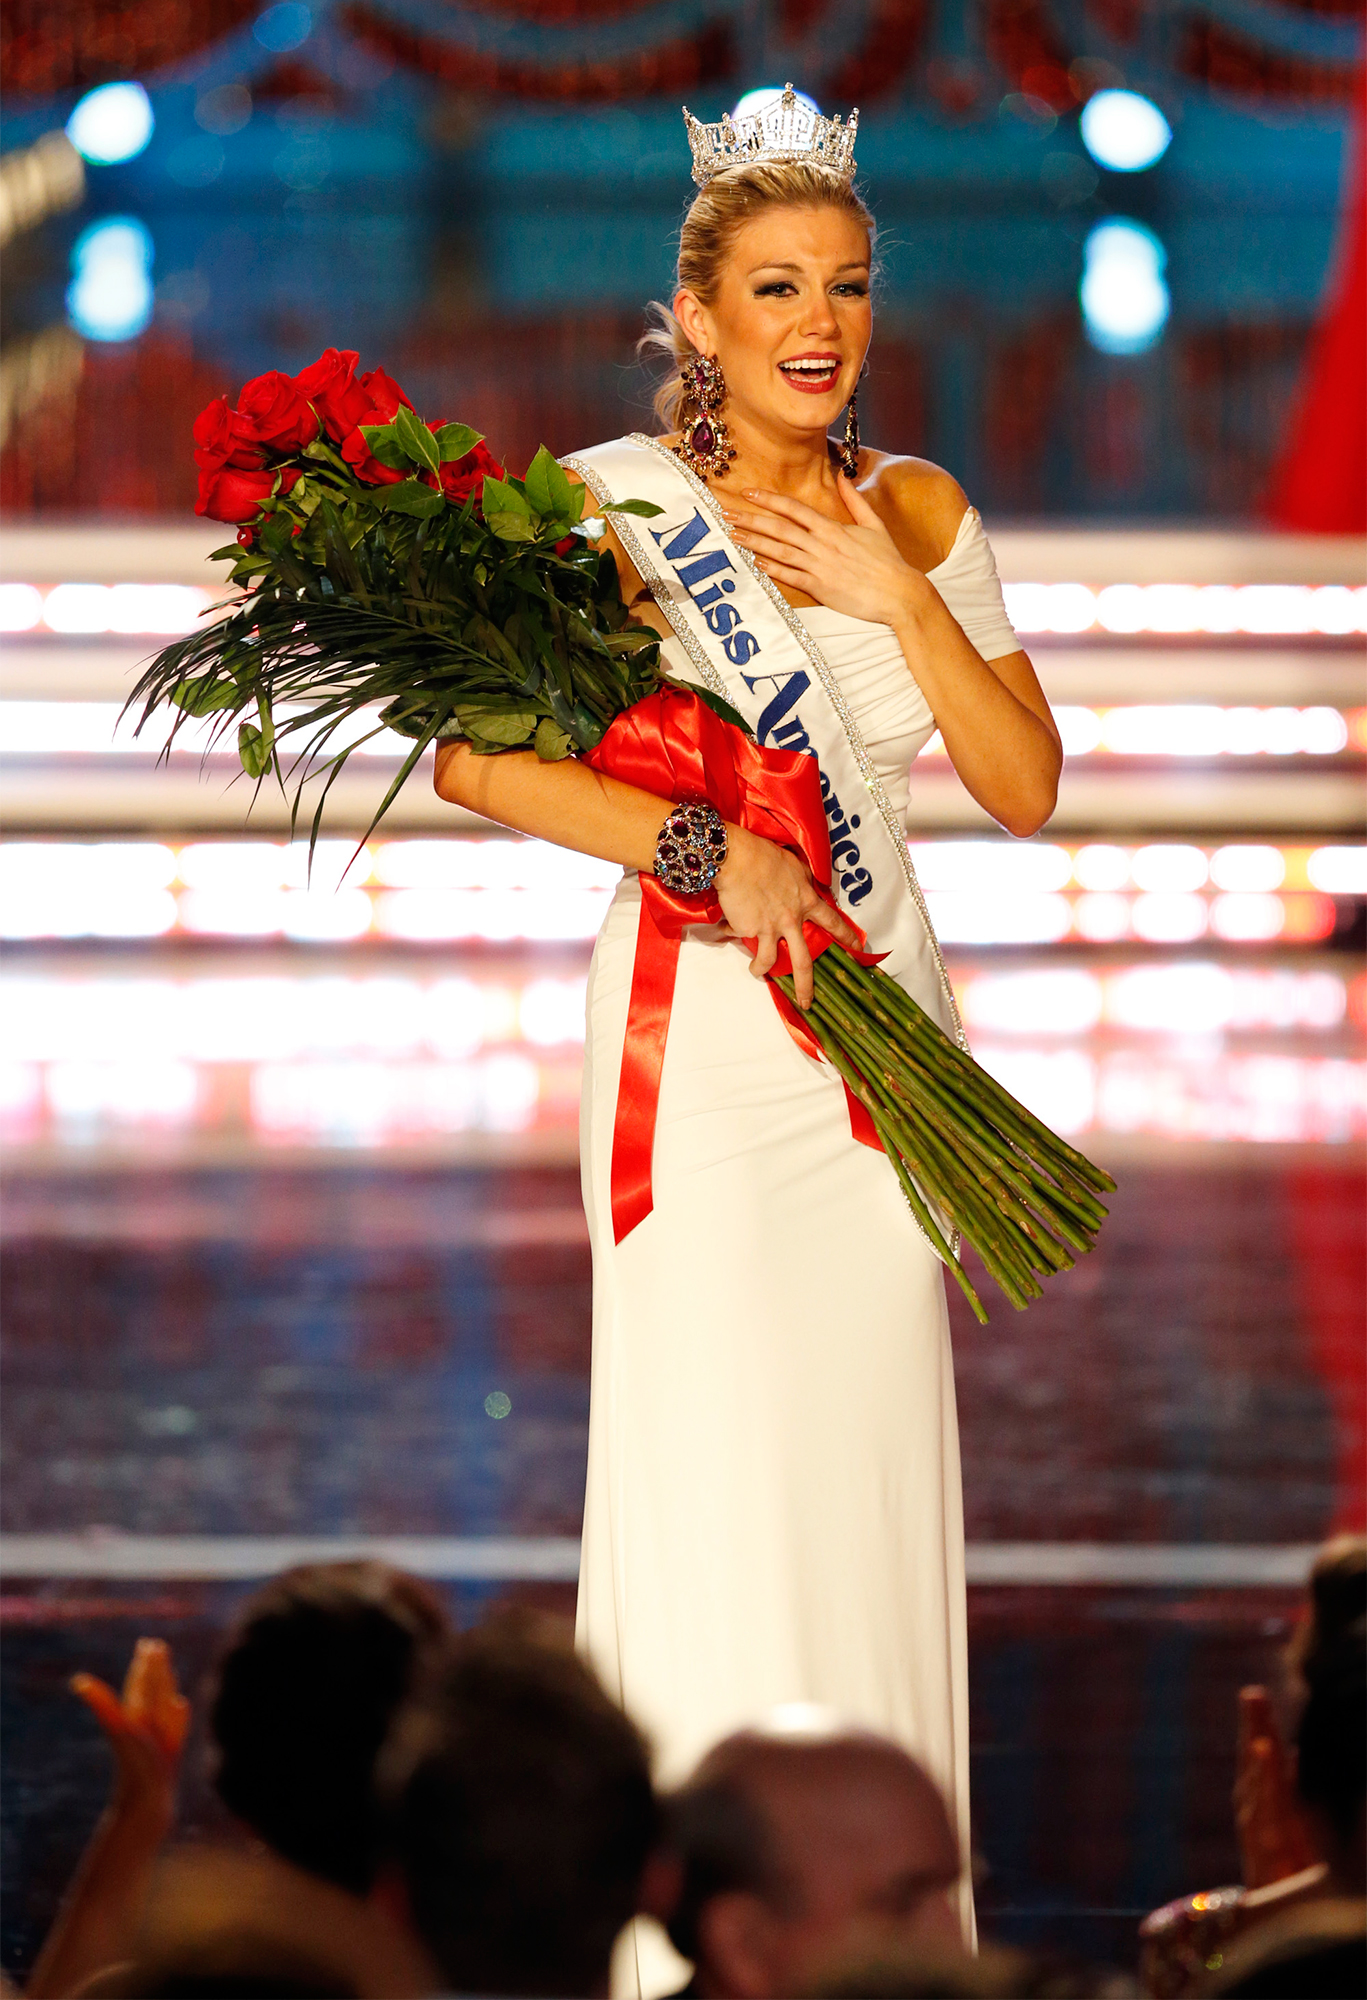 ABC's Coverage of The 2013 Miss America Competition